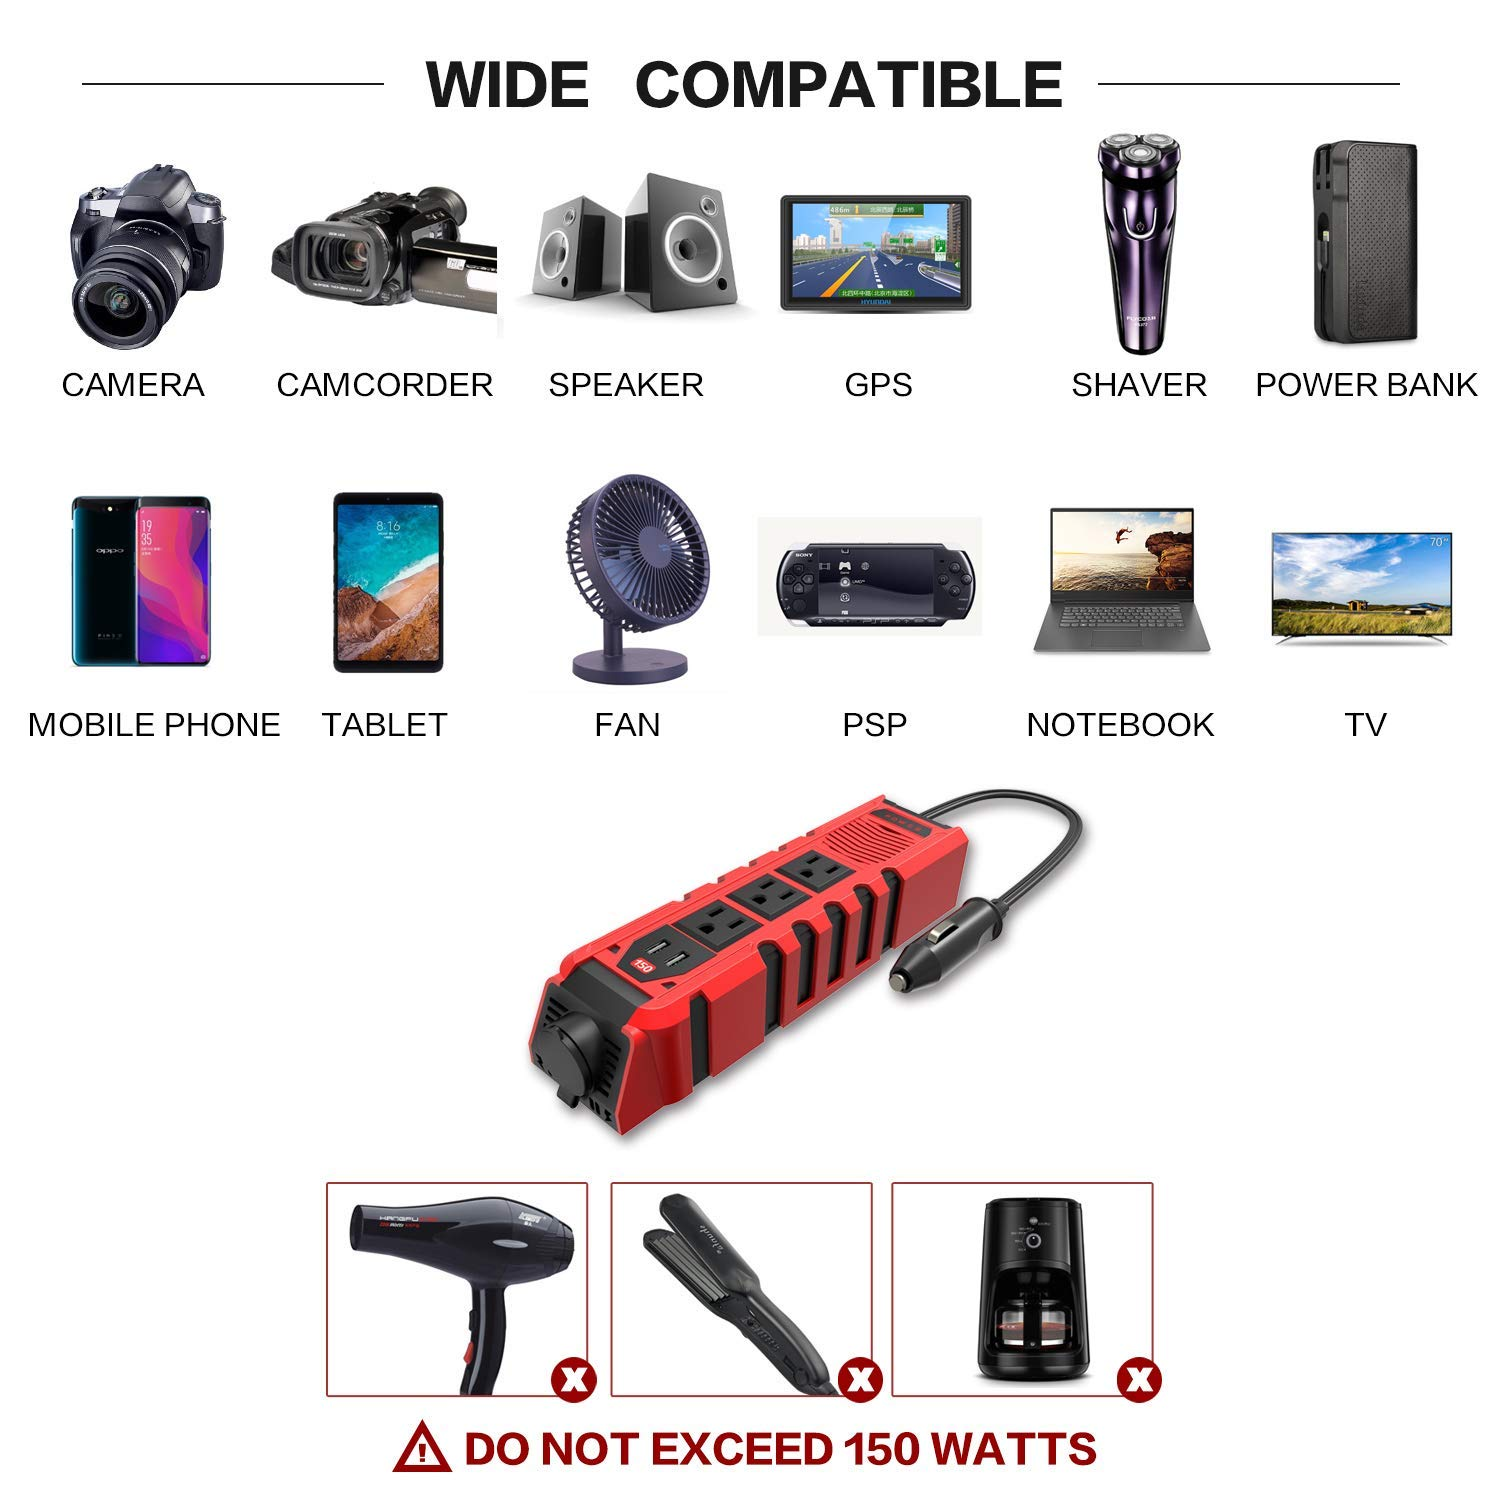 BYGD 150W Car Power Inverter DC 12V to 110V AC Converter with 3 Charger Outlets and Dual 2.4A USB Ports Car Cigarette Lighter Adapter by BYGD (Image #3)